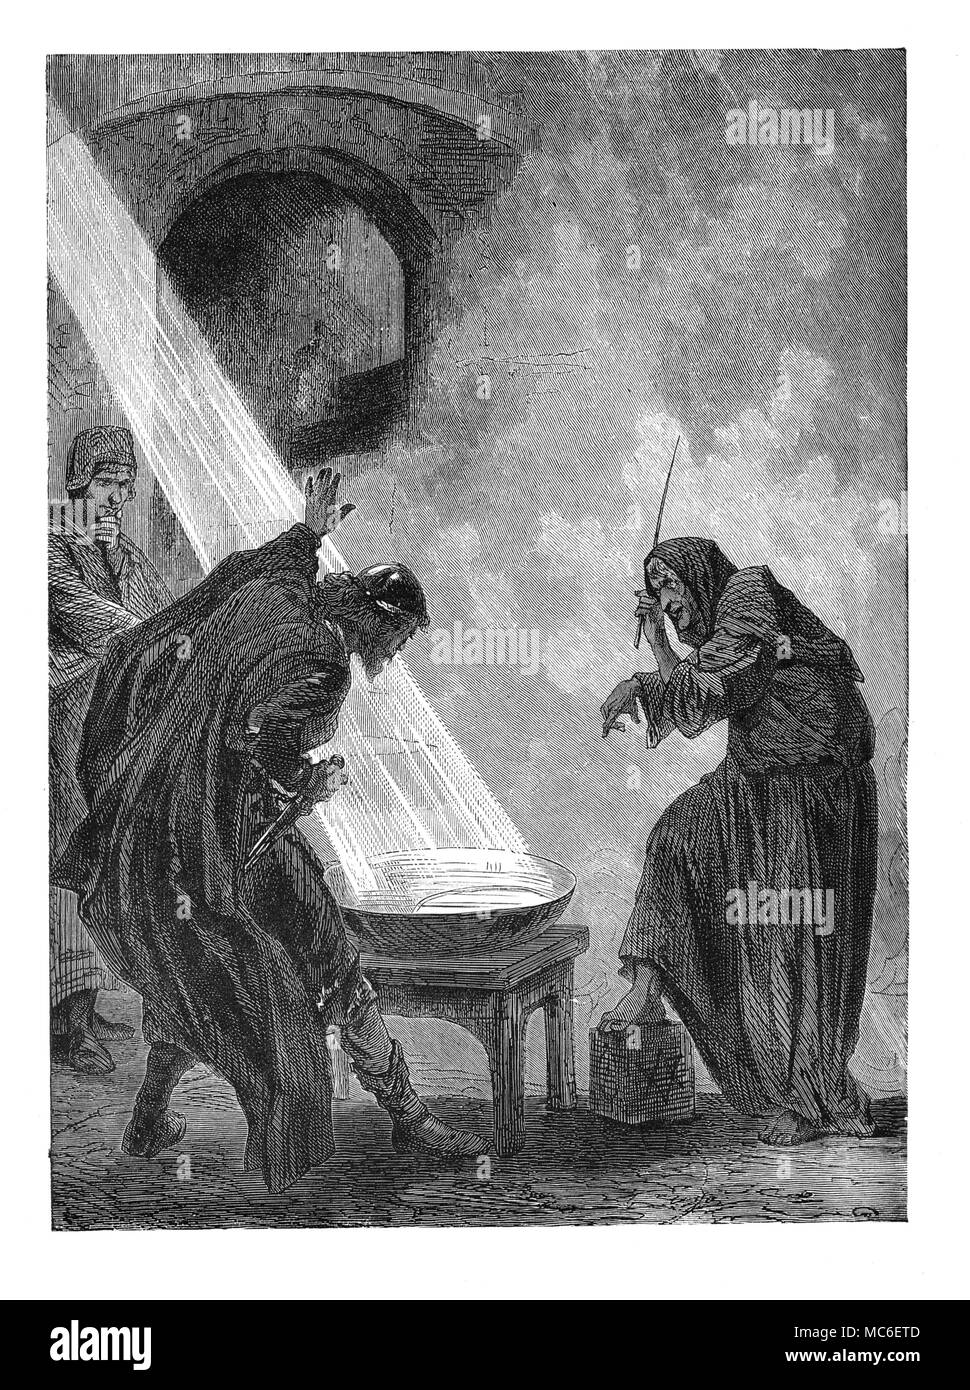 DIVINATION - CATOPROMANCY A witch divining the future by means of a mirror, reflecting light within a bowl of water:  woodengraving from Picturesque Science for the Young. - Stock Image